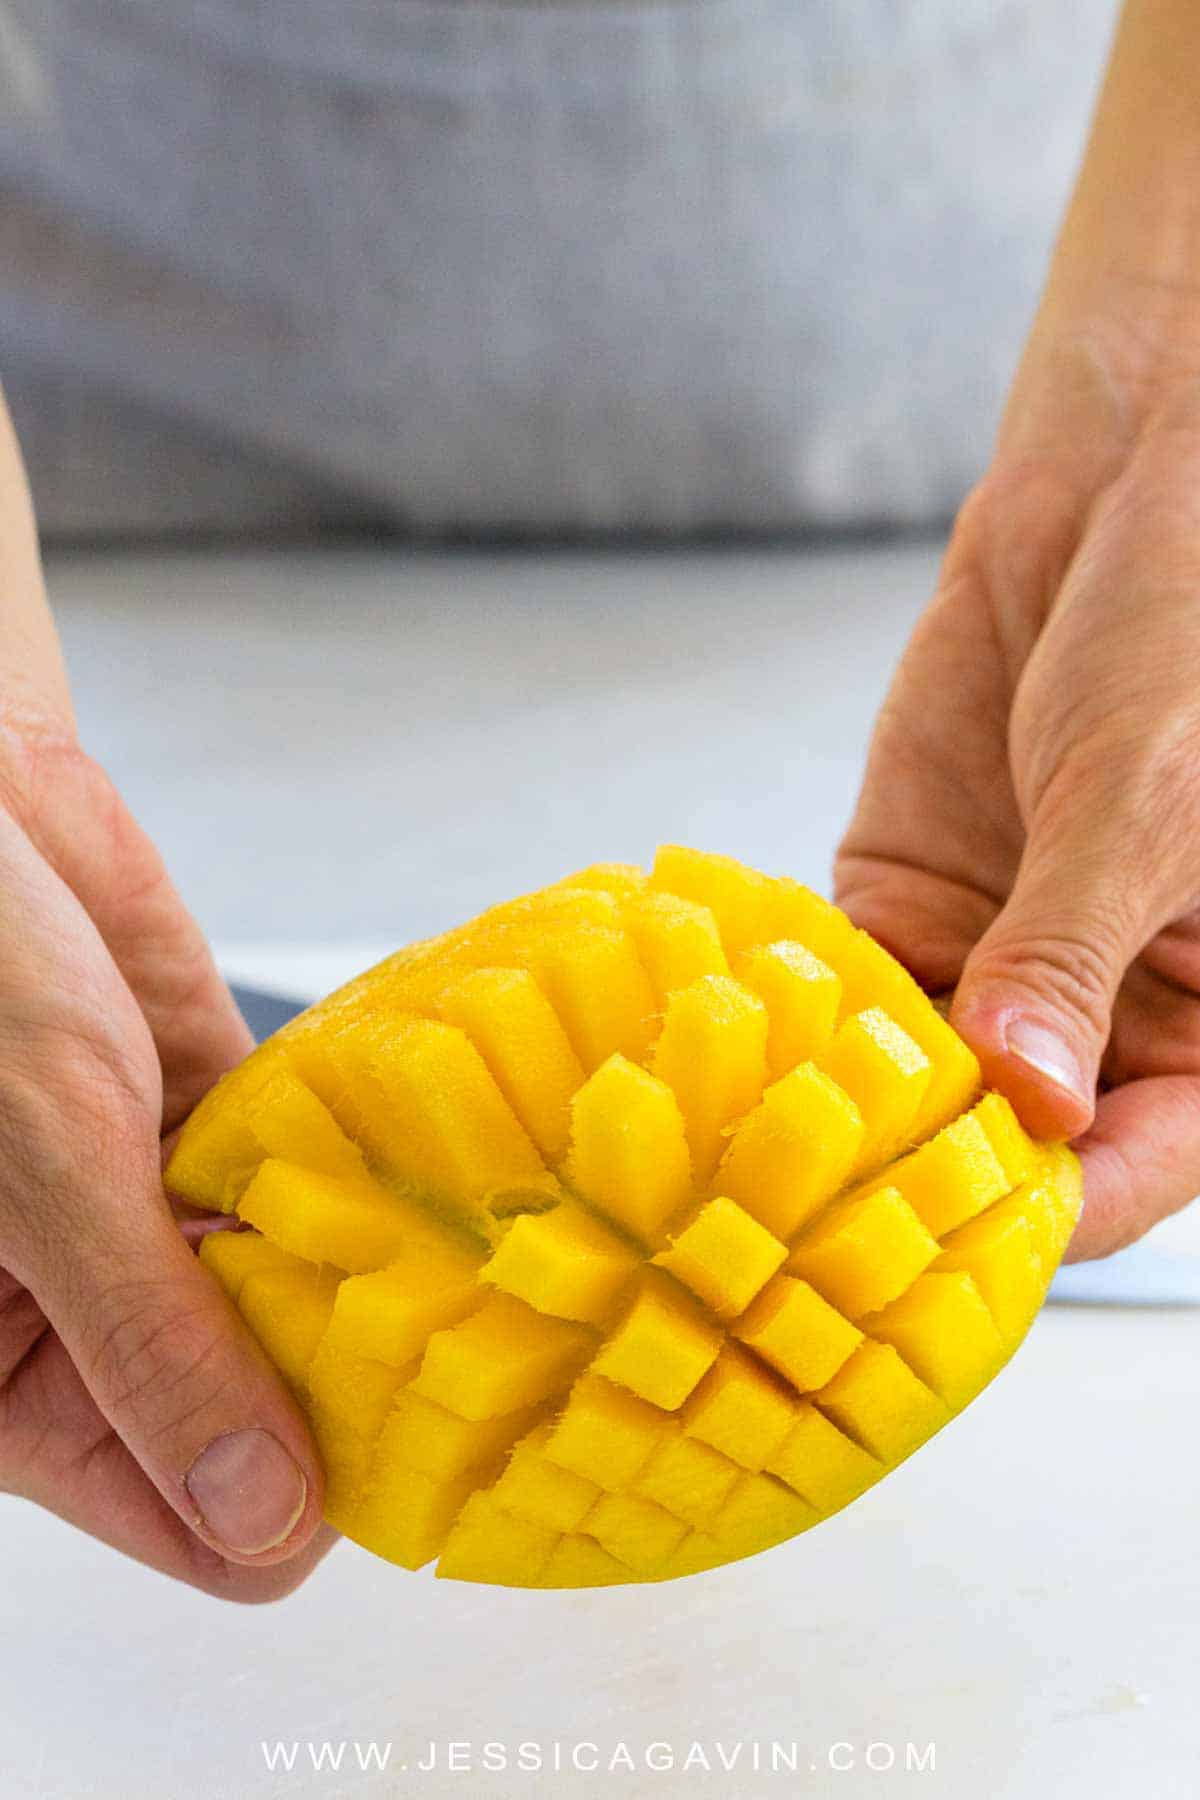 Learn how to cut a mango using a few simple techniques to yield the most fruit. The bright orange sweet flesh can be sliced or diced and be enjoyed as a stand-alone snack or added to various recipes. #mango #knifeskills #howto